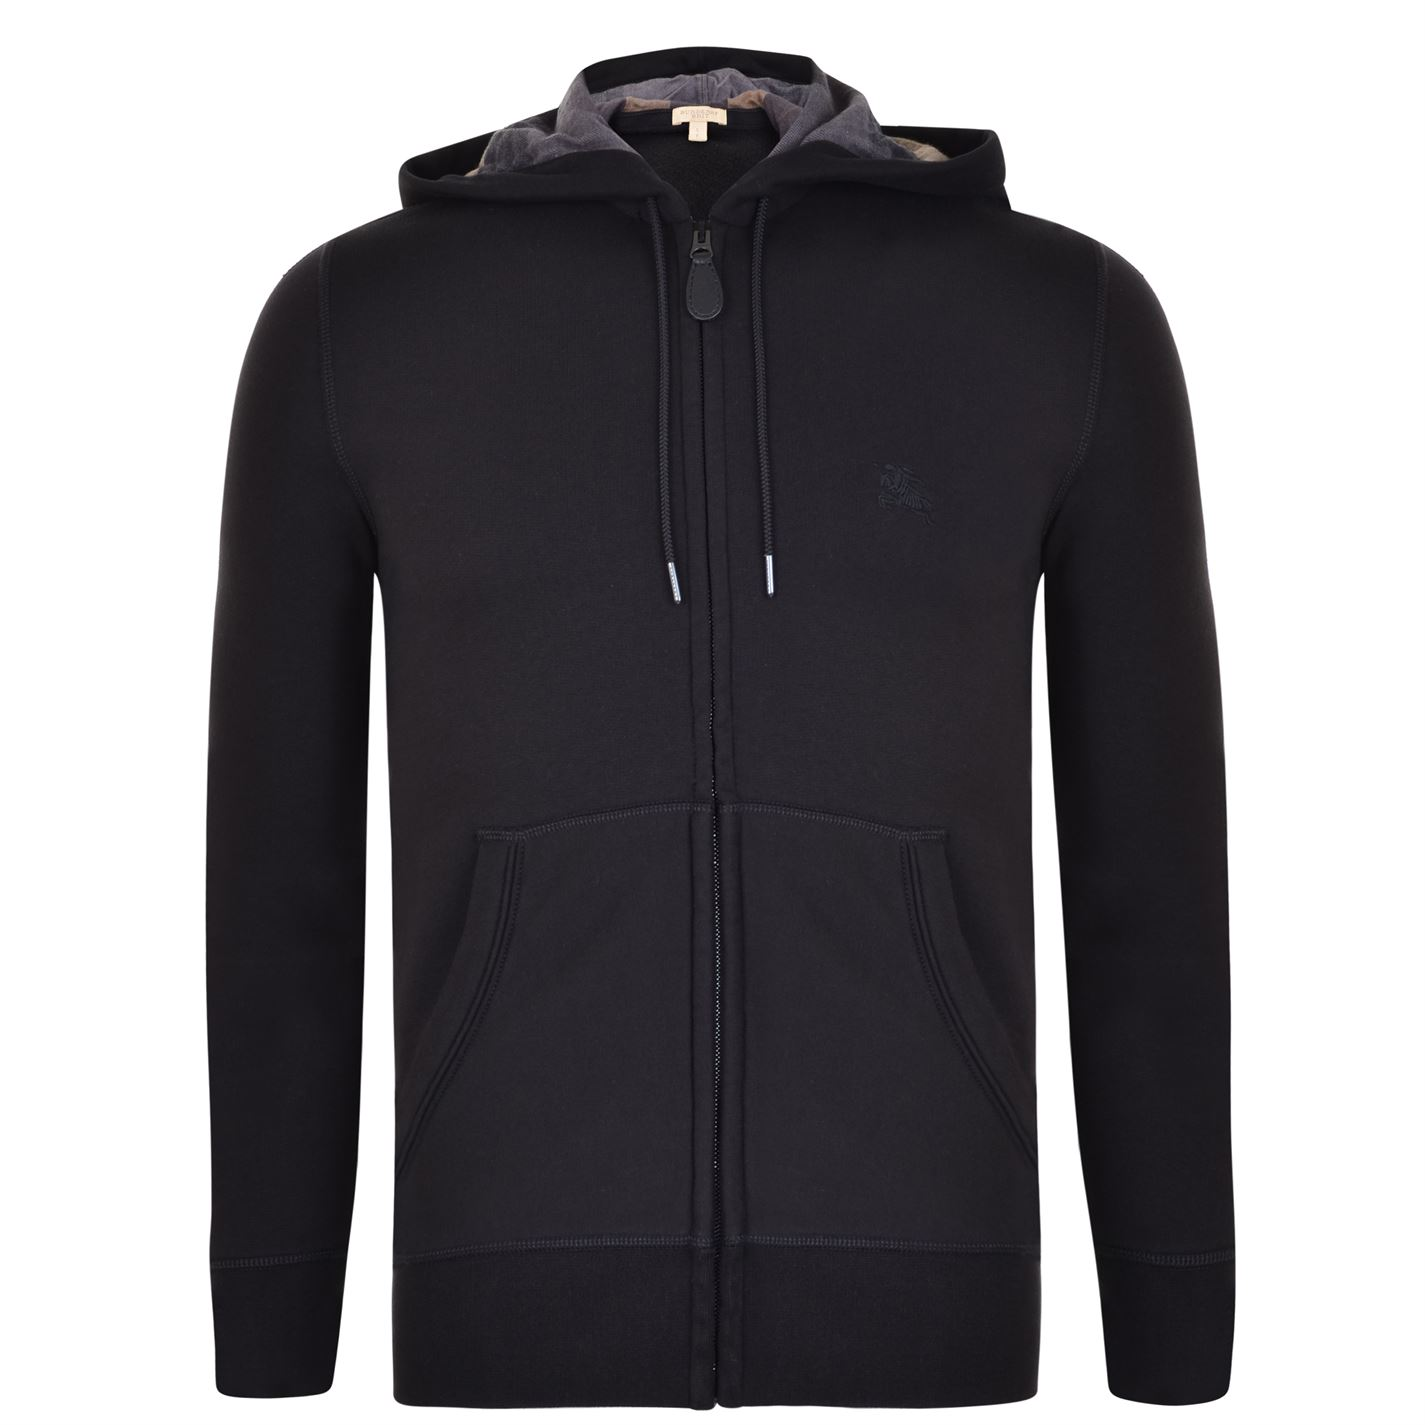 6b29110966e Under Armour Rival Fitted Full Zip pánská mikina Black - Glami.cz